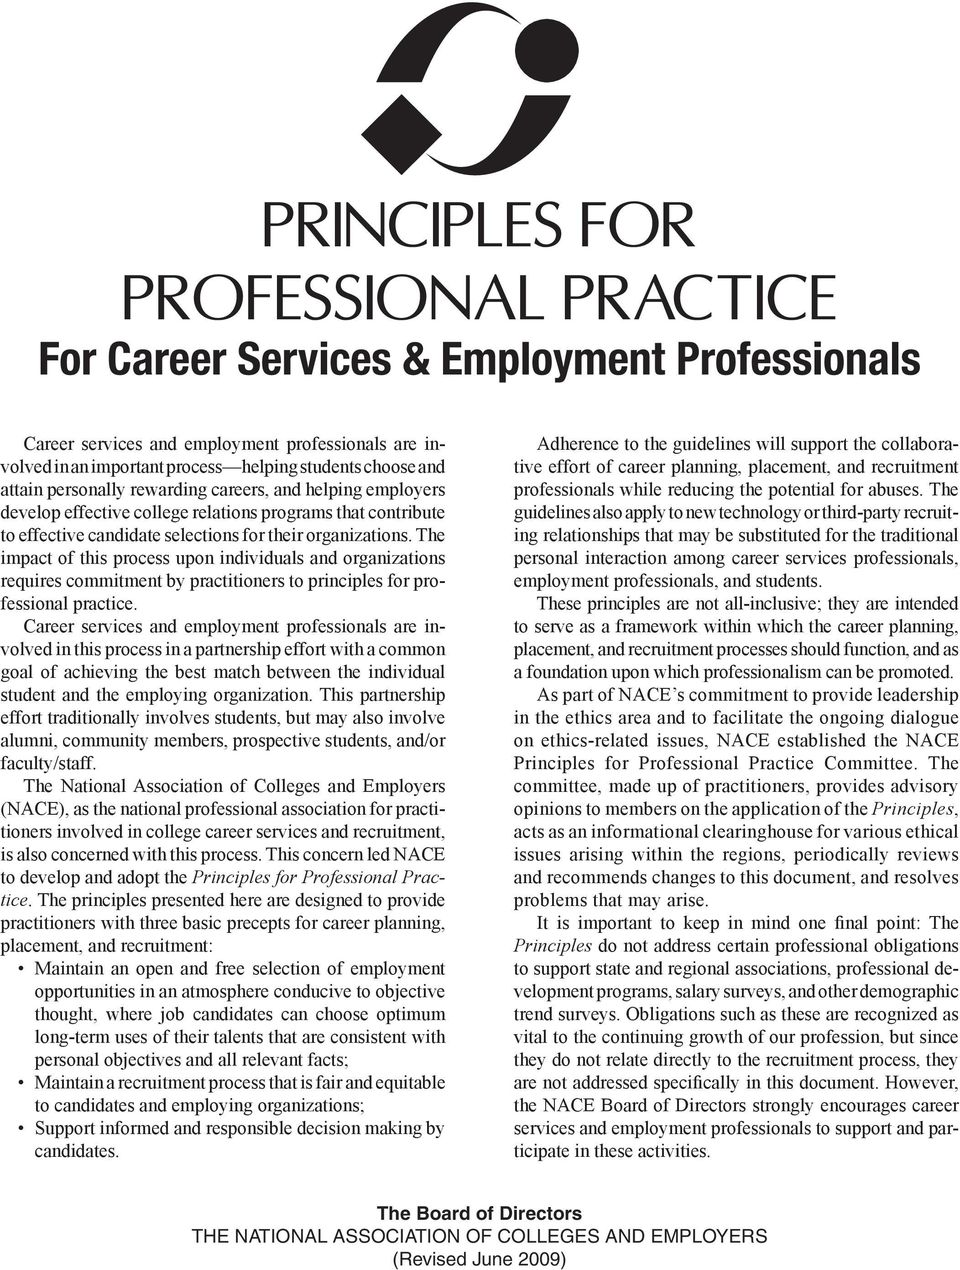 The impact of this process upon individuals and organizations requires commitment by practitioners to principles for professional practice.